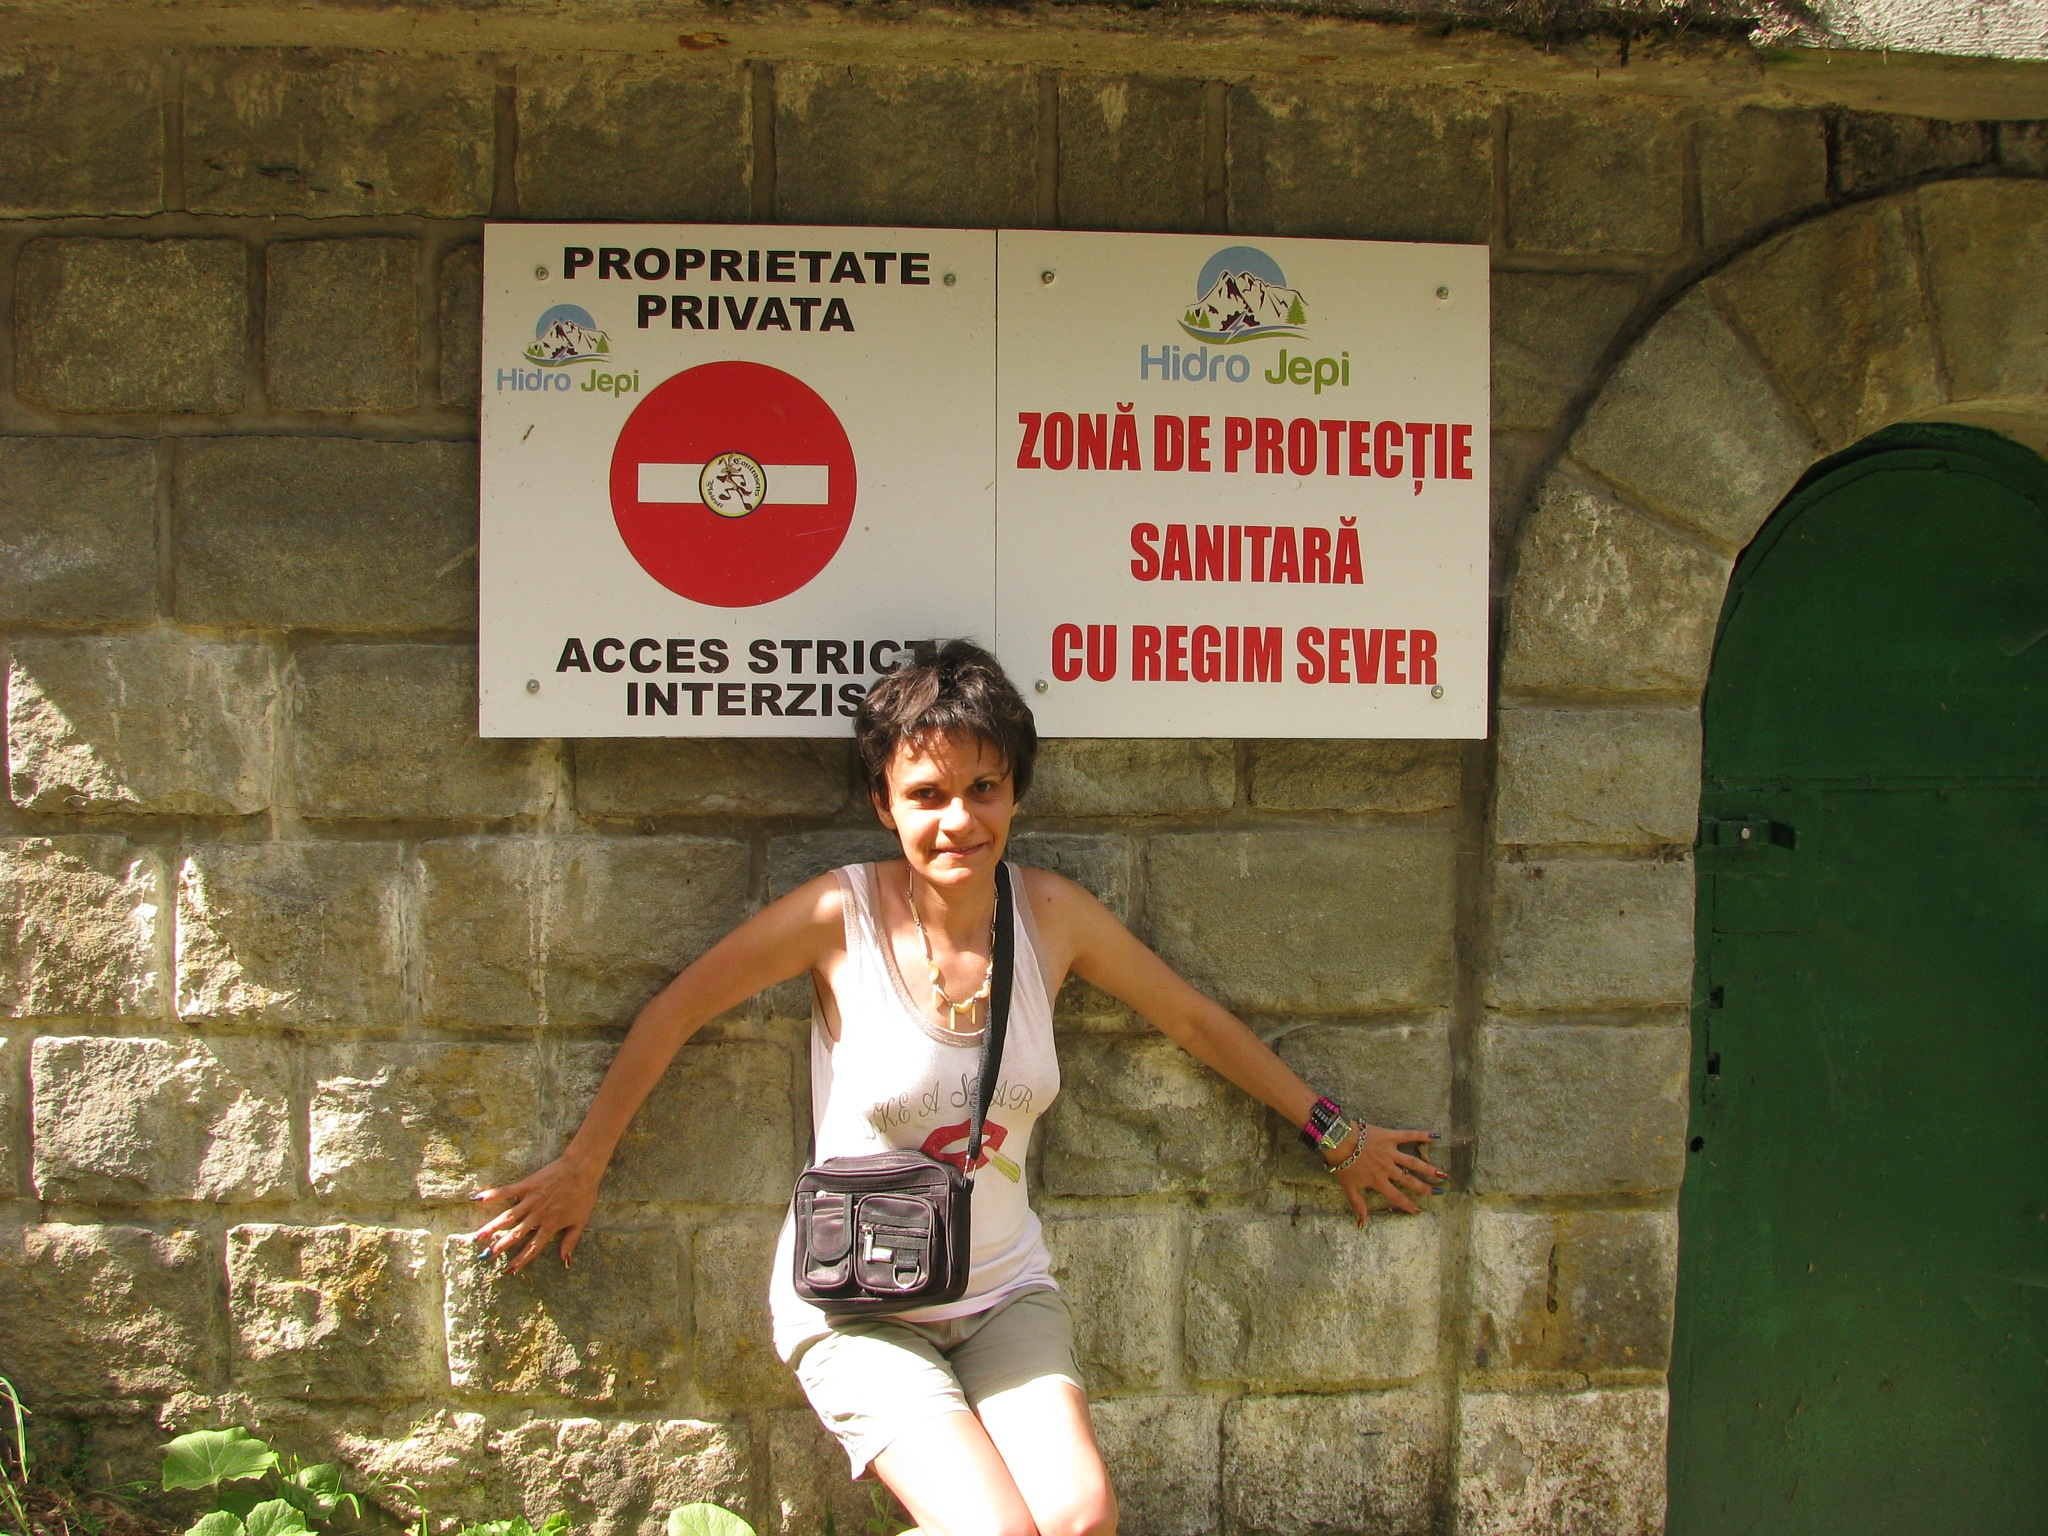 No Trespass, strictly forbidden, Sanitary protection area with strict regime ! by Elena Maria